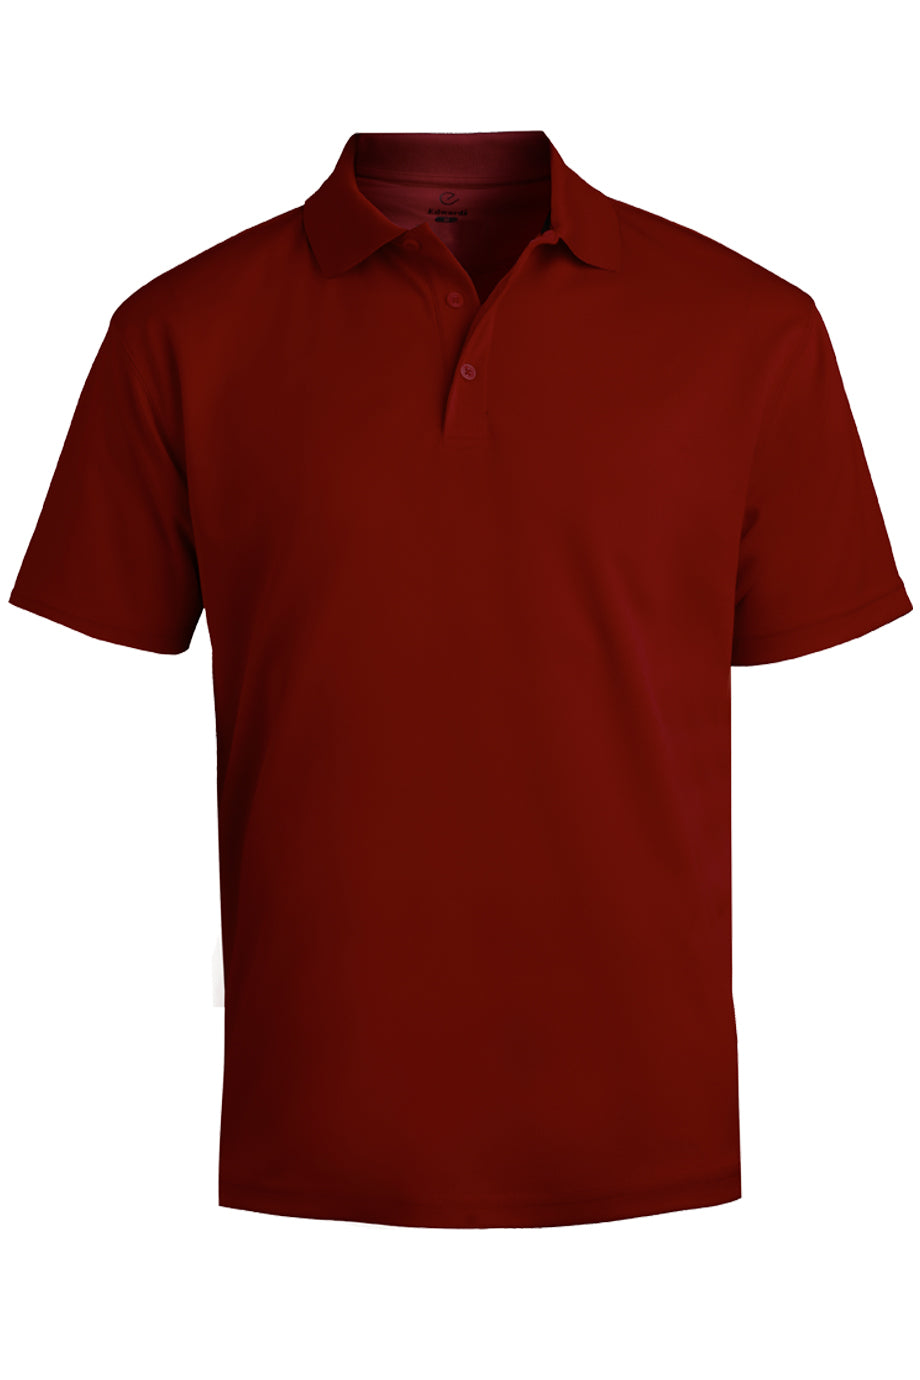 Burgundy Edwards Mens Hi-Performance Mesh Short Sleeve Polo